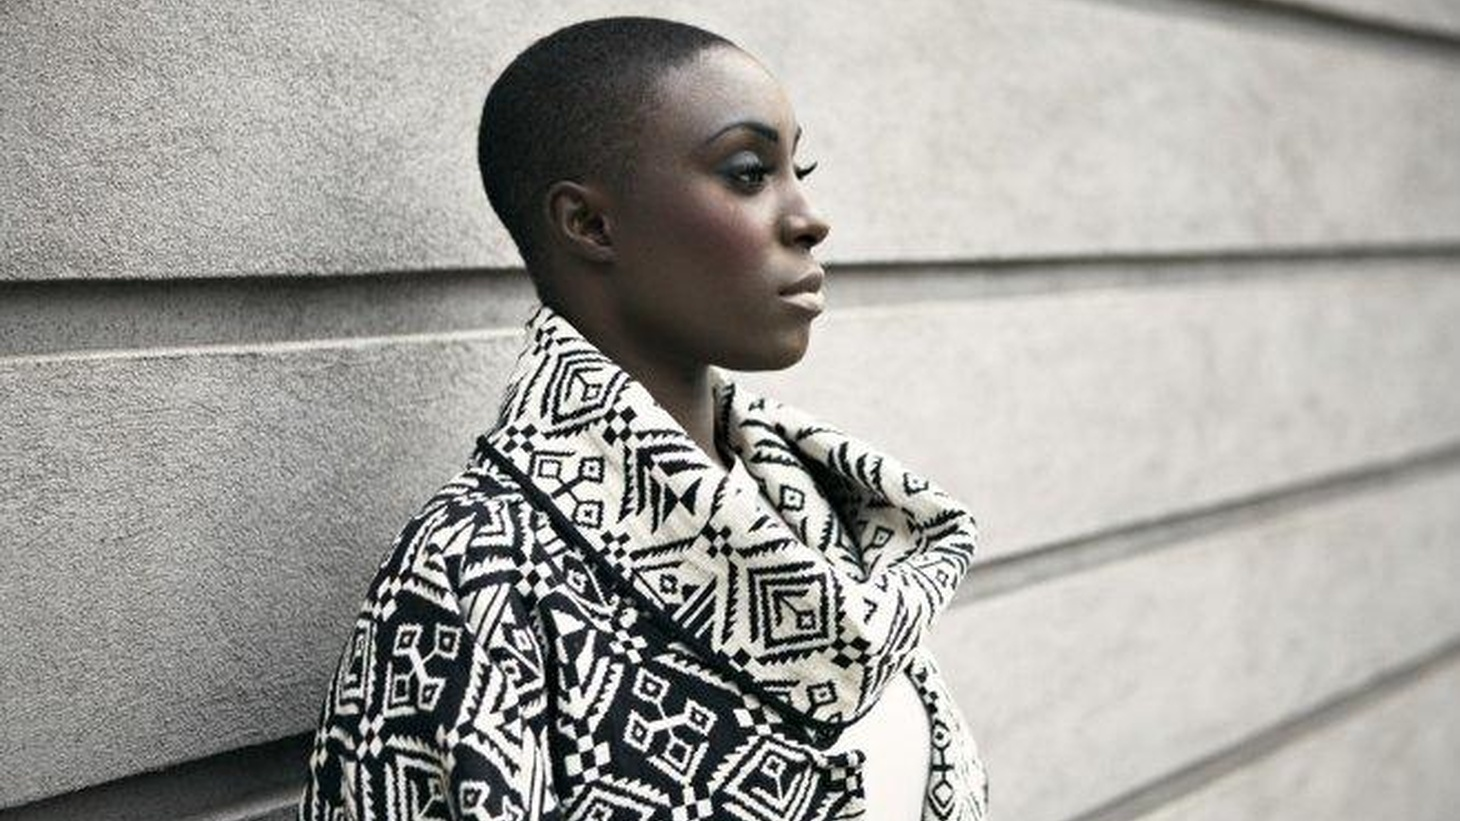 This week, Tom Schnabel focuses on new CDs from talented women including Laura Mvula, Cesaria Evora, Maria Marquez and more.